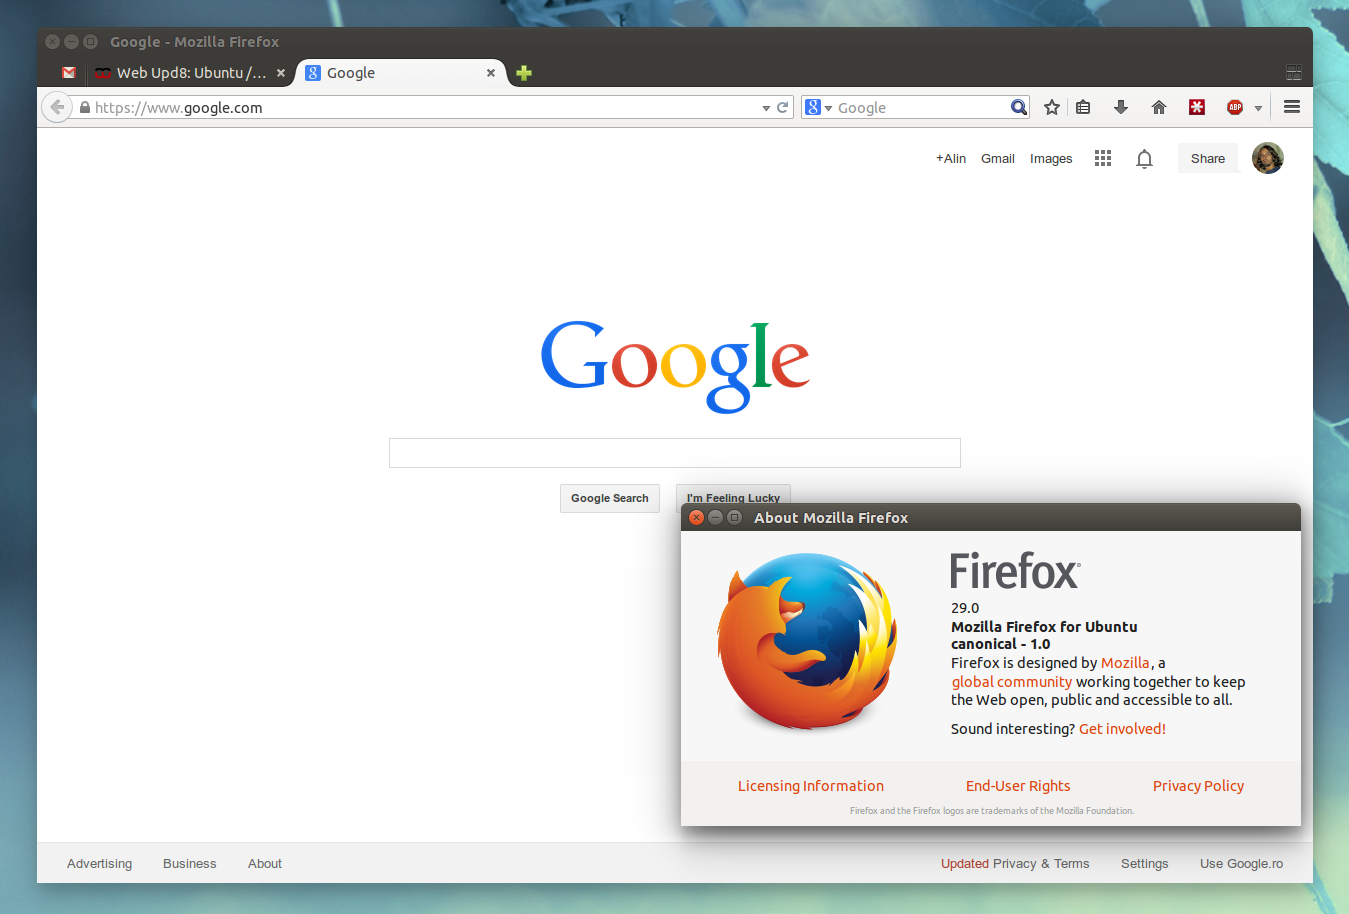 Firefox 29 is completely different